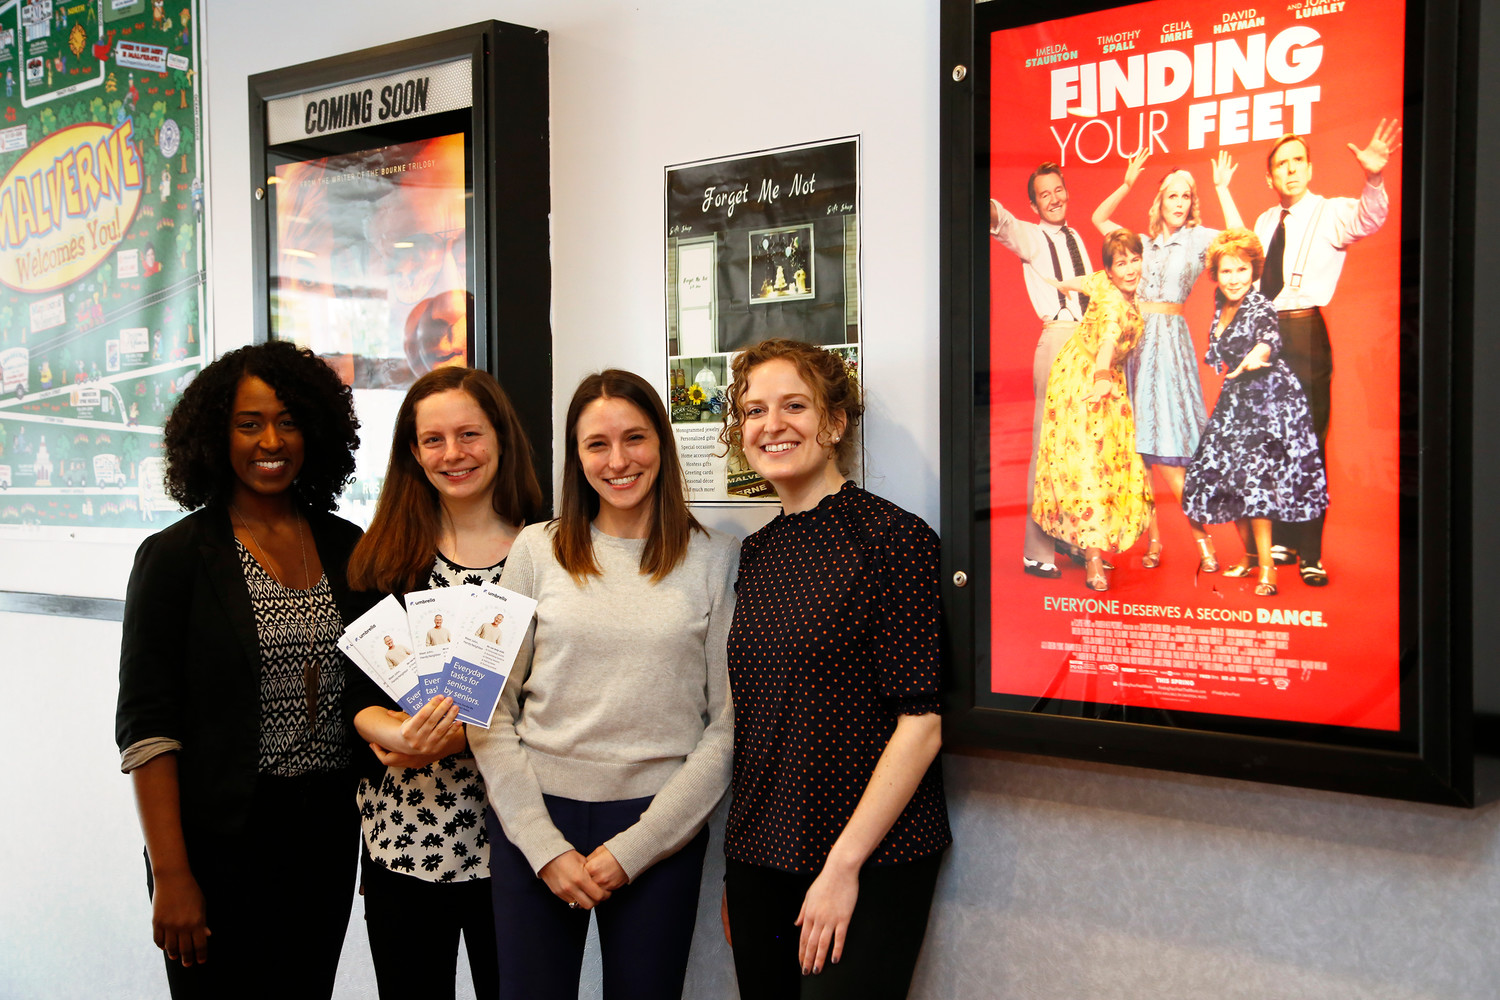 Umbrella staff members, from left, Samra Brouk, Emma Gilsanz, Lindsay Ullman and Erin George introduced their program to residents at the Malverne Cinema last Friday.